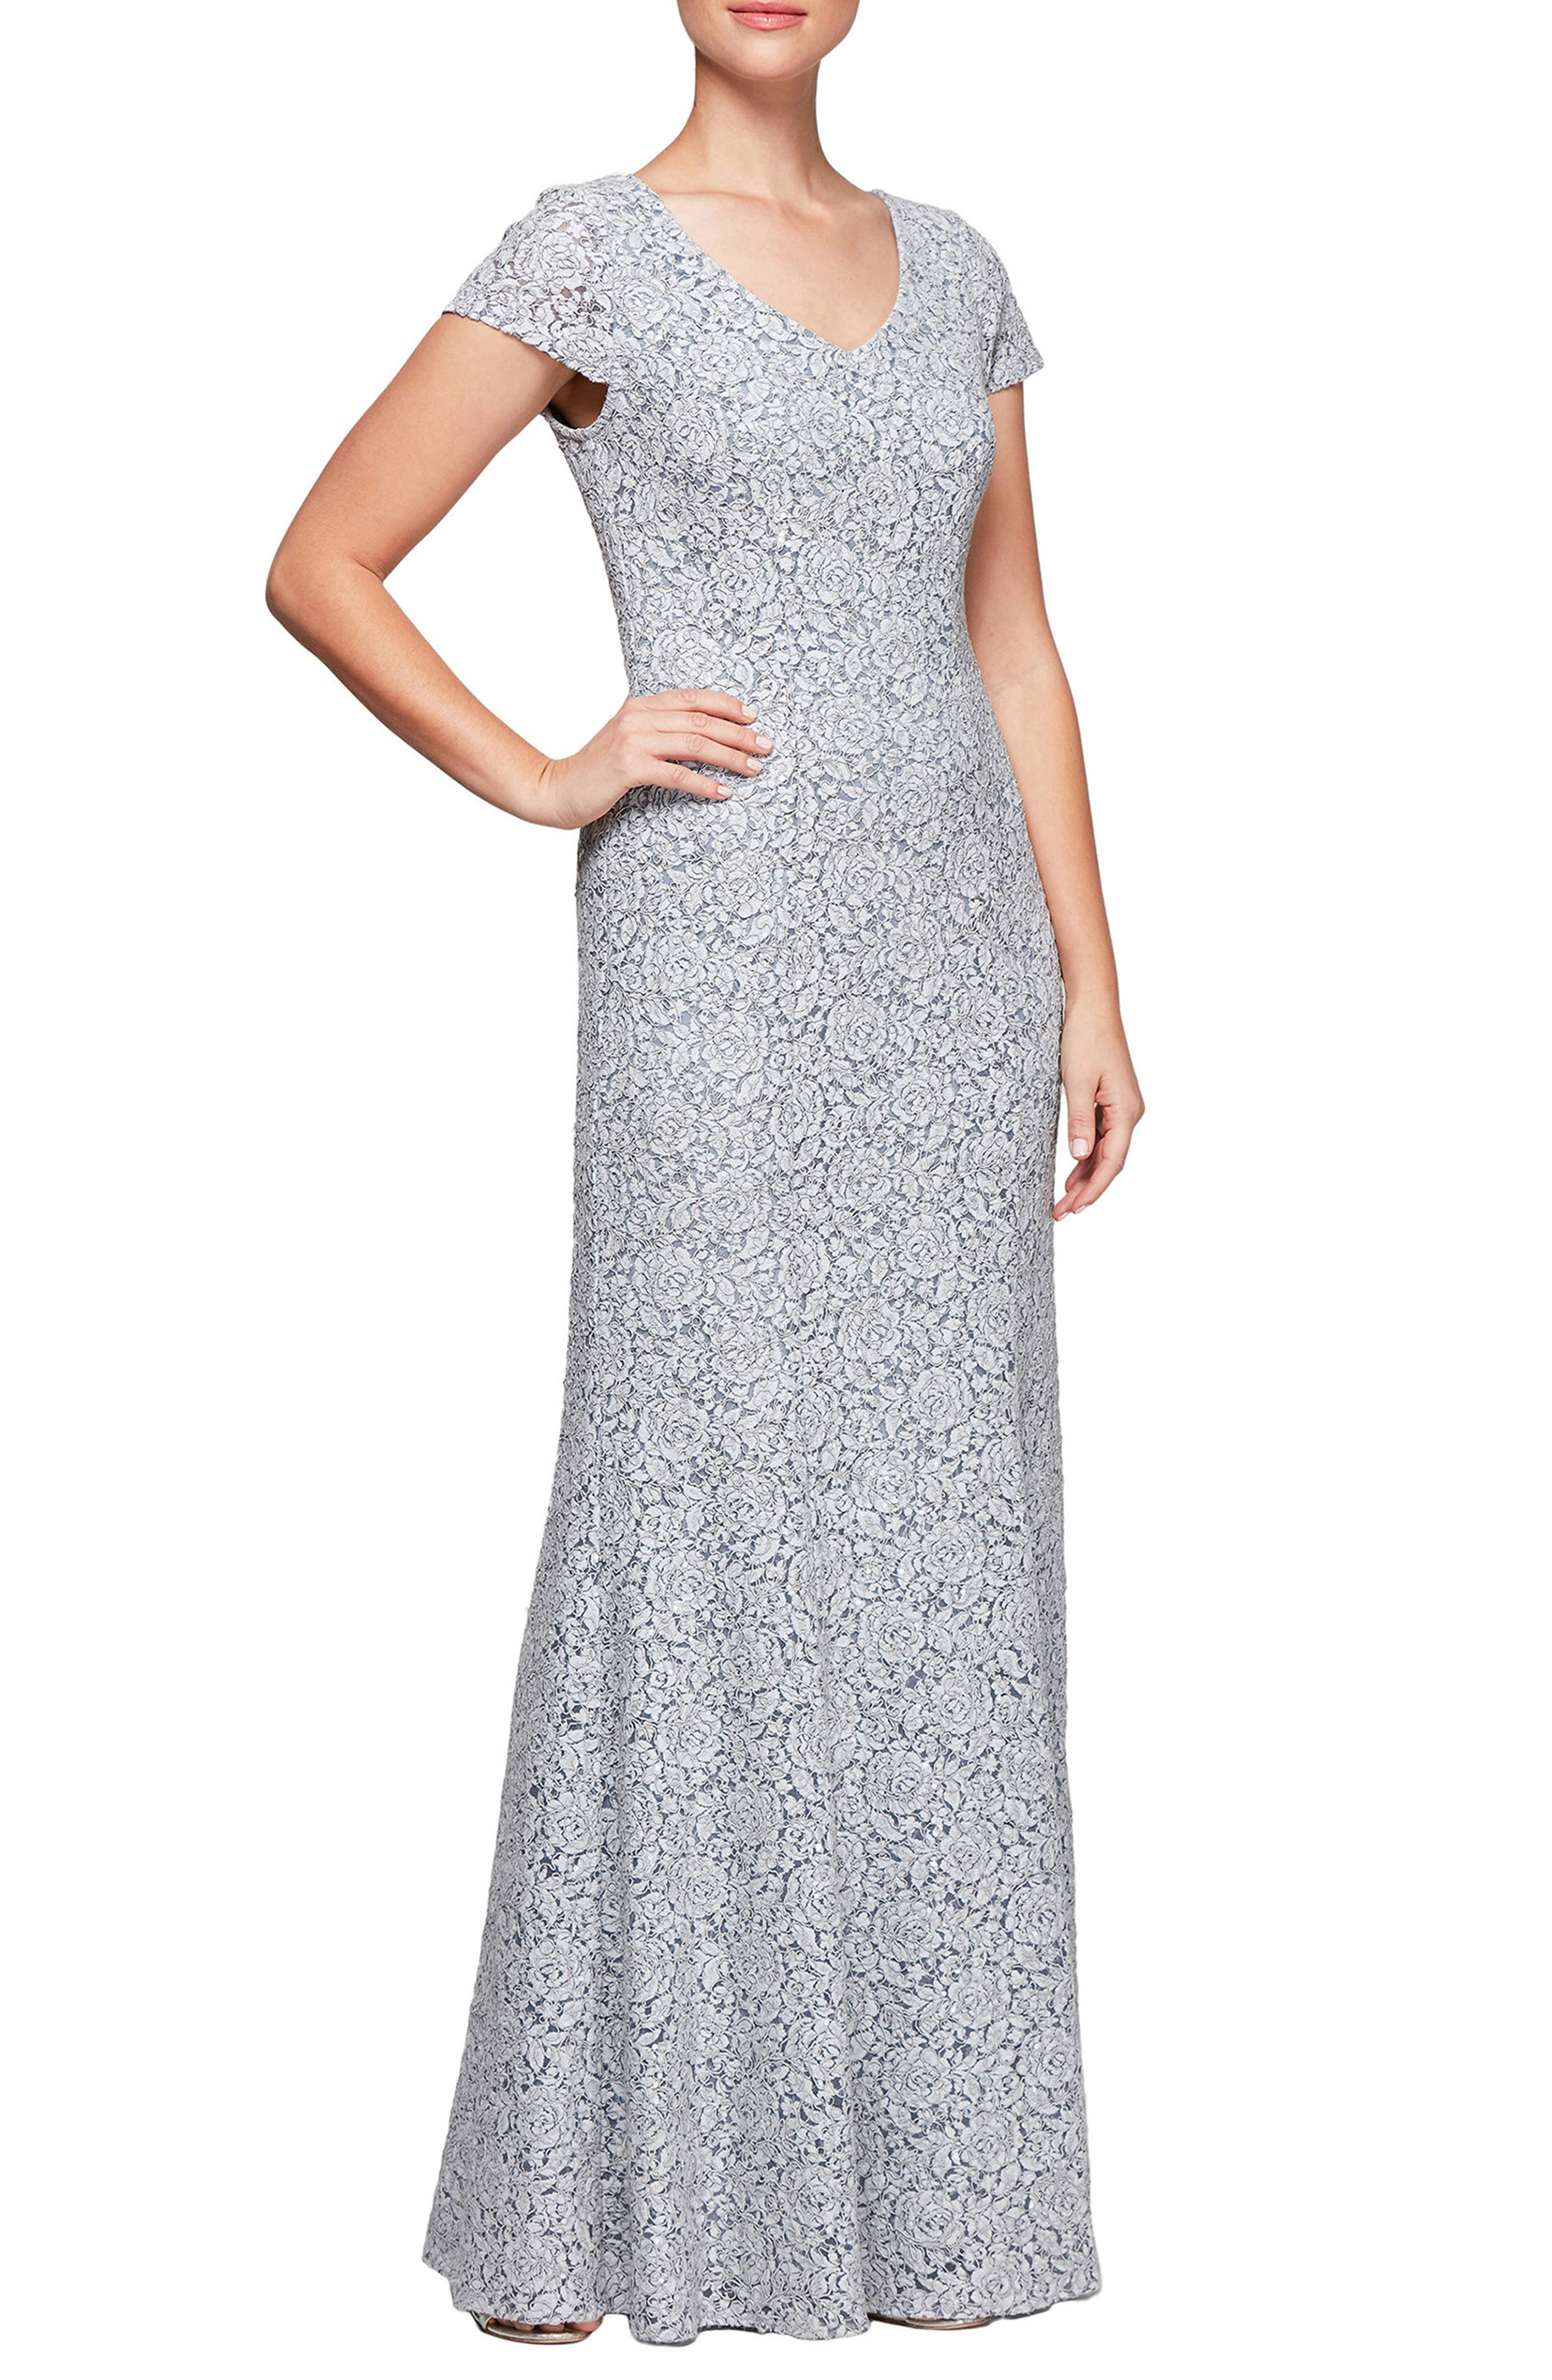 Alex Evenings Floral Corded Lace Evening Dress, 8 (similar to 1) - Blue